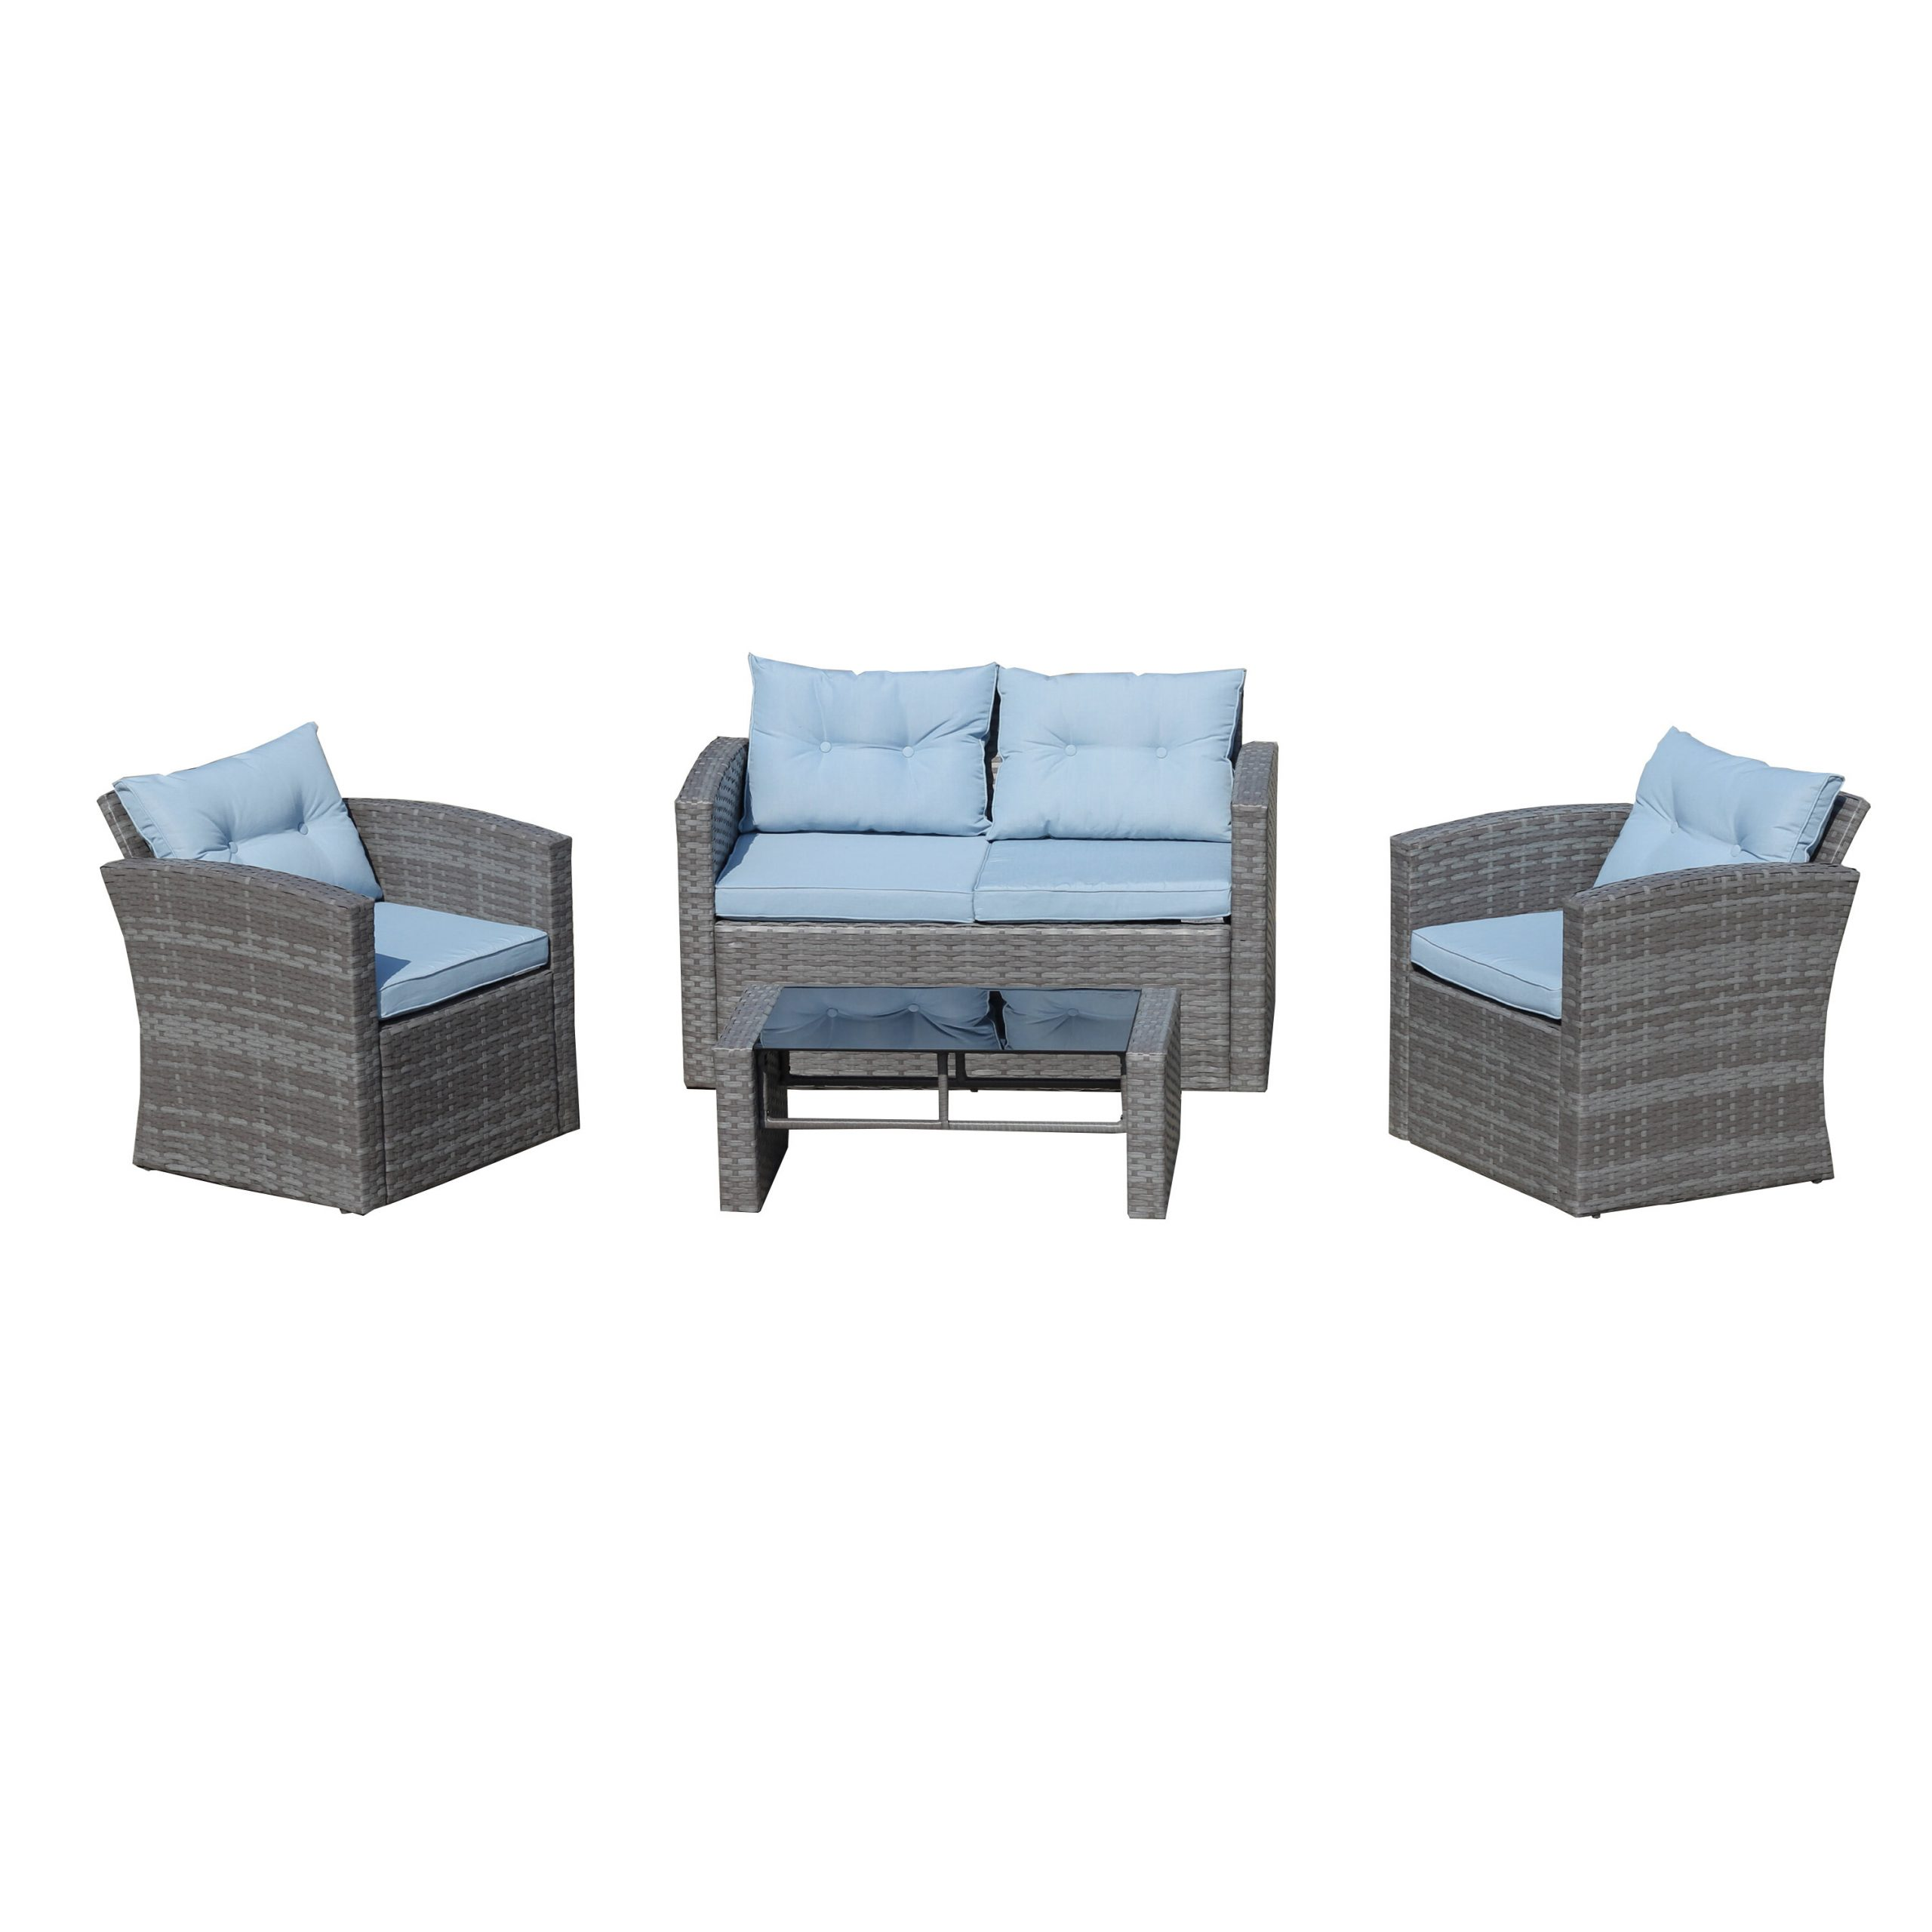 Hagler Outdoor Loveseats With Cushions Pertaining To Well Known Rawtenstall 4 Piece Sofa Seating Group With Cushions (View 23 of 25)